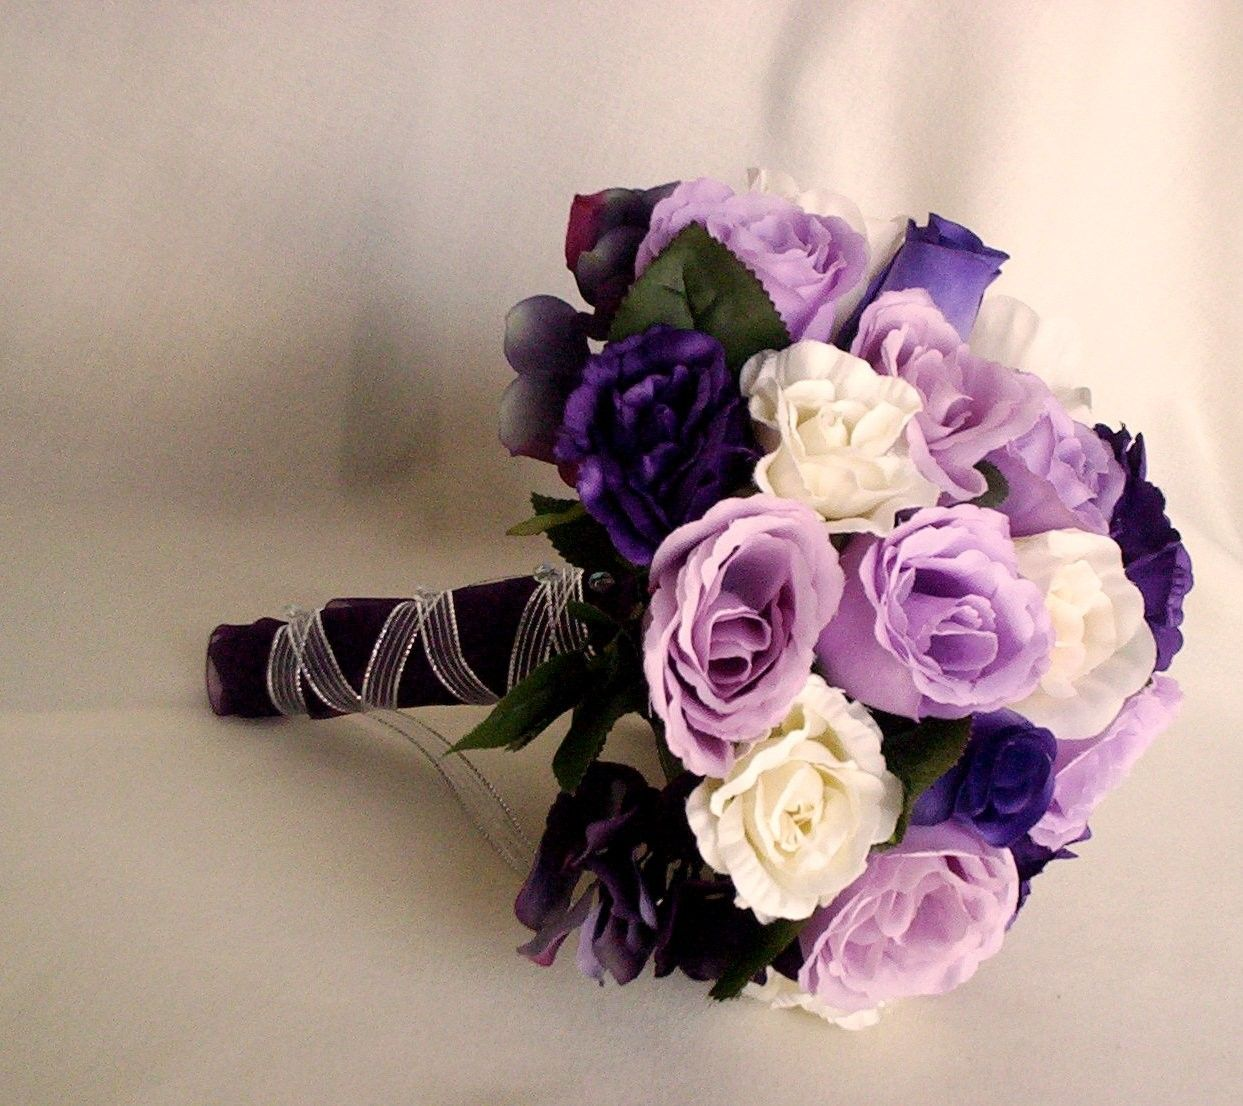 Hochzeit Farben Bride Bouquet Wedding Flowers Purple Lavender Silk Rose